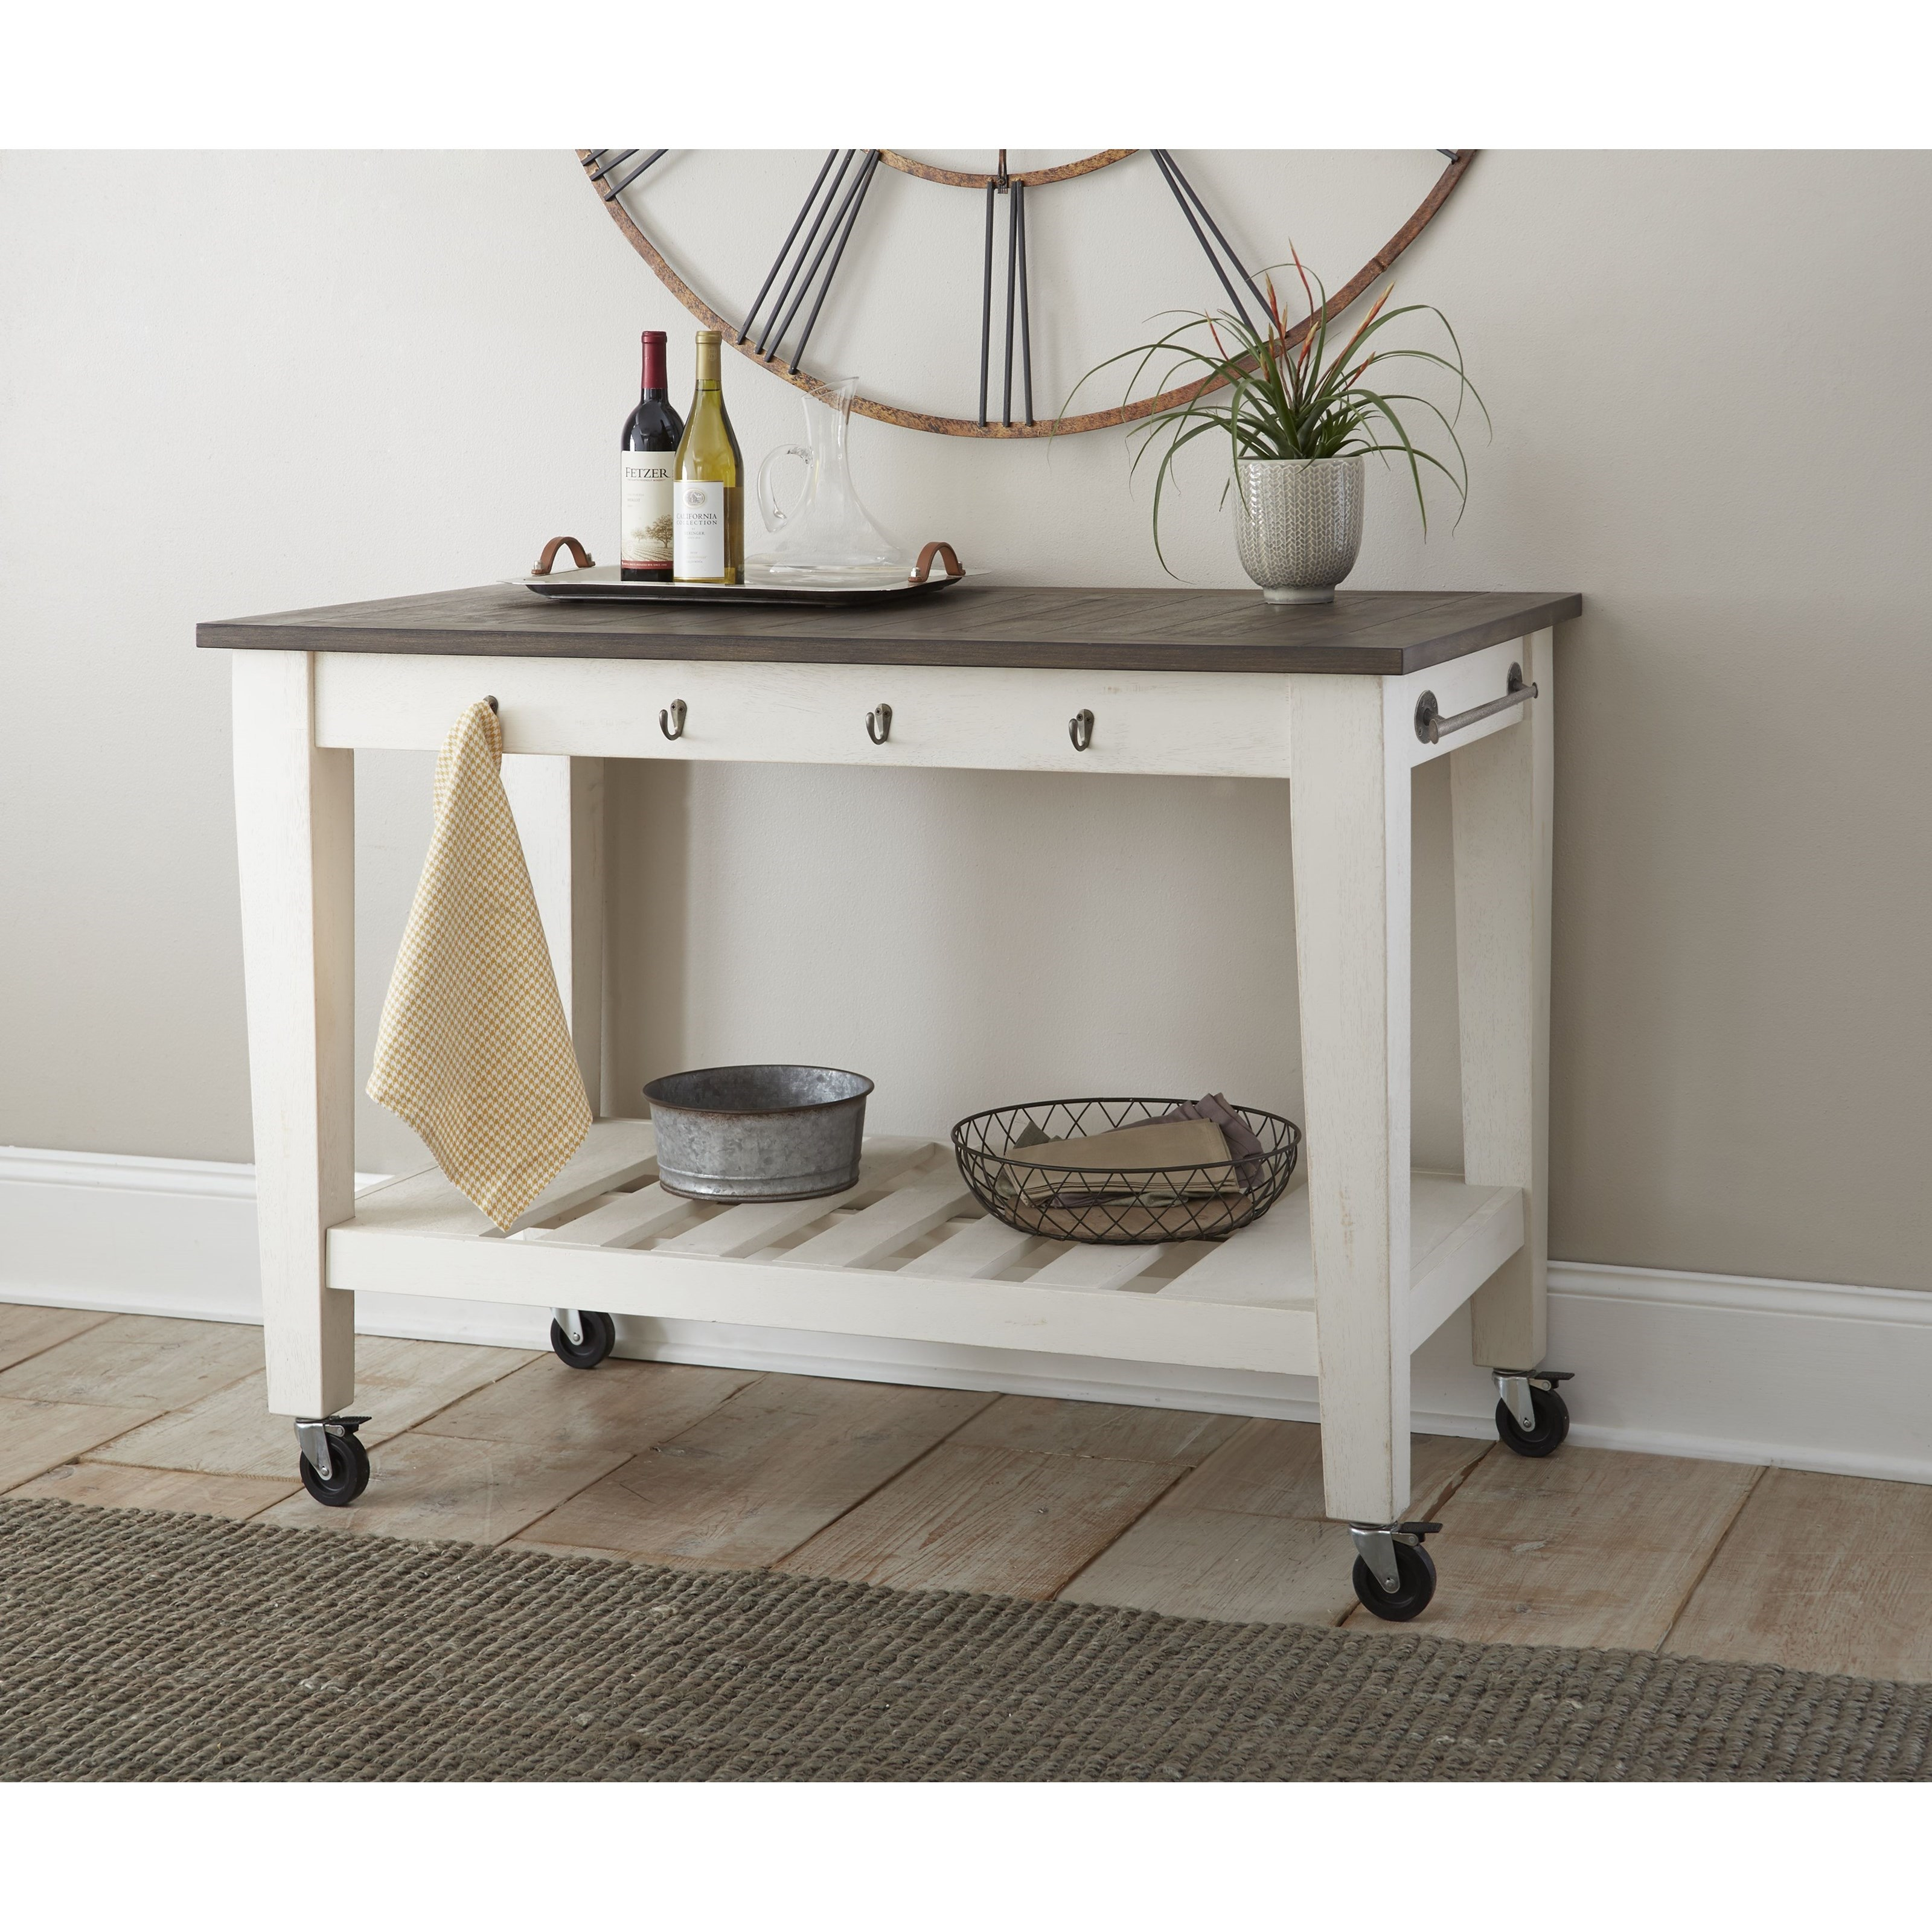 Cayla Two-Tone Kitchen Cart by Steve Silver at Walker's Furniture